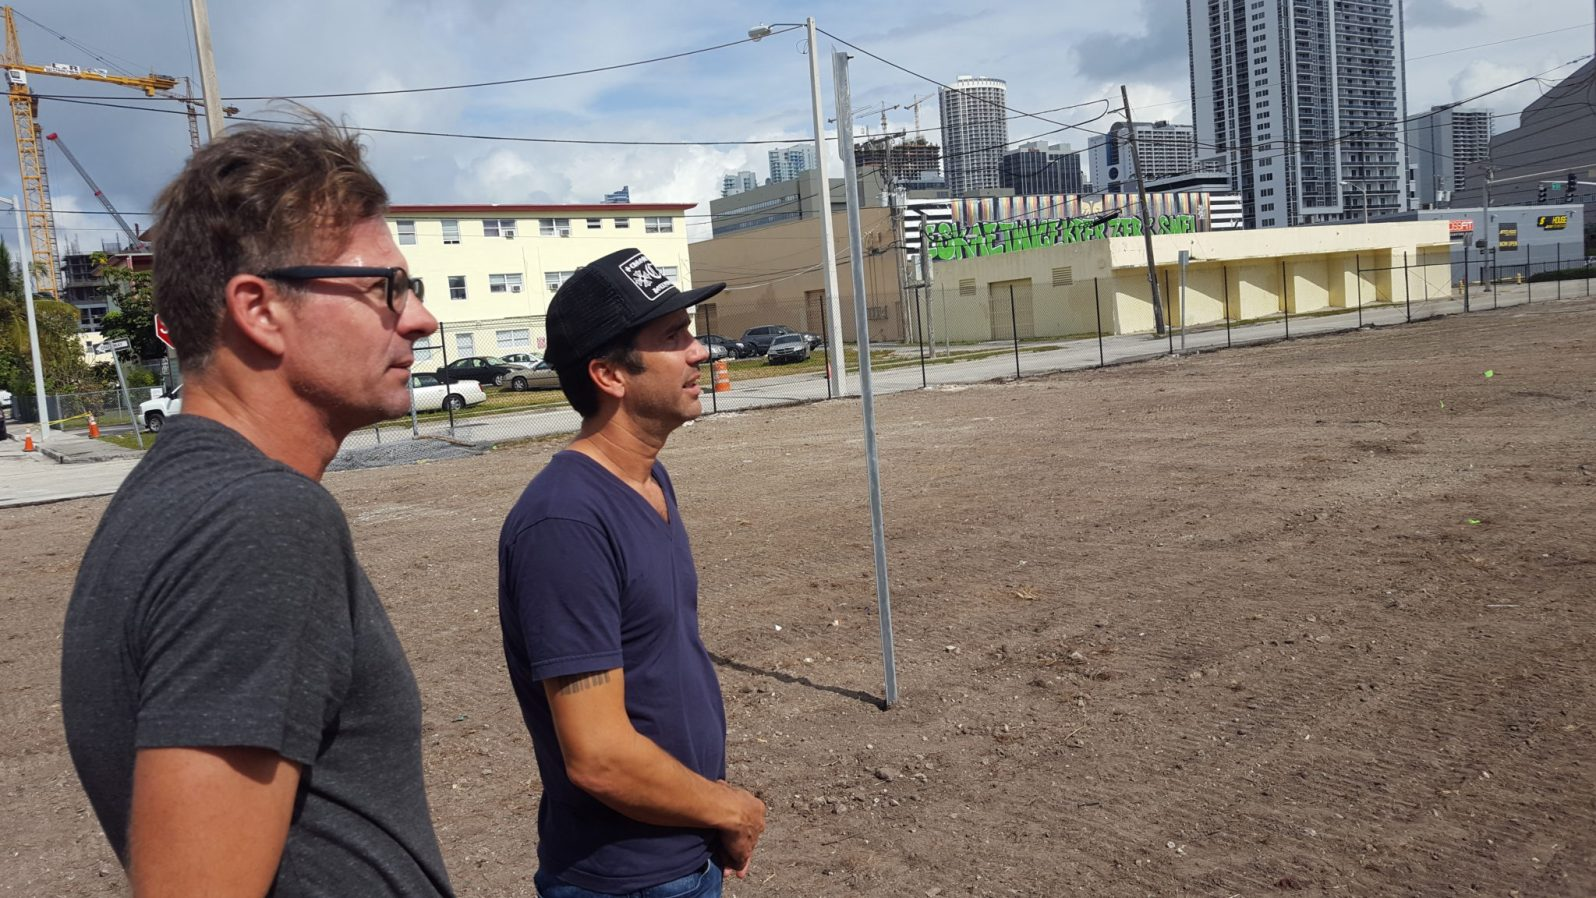 Artist Michael Loveland and Omni Park's Brad Knoefler discuss the PAMM installation to be created by Loveland. (Courtesy of Aaron Glickman)